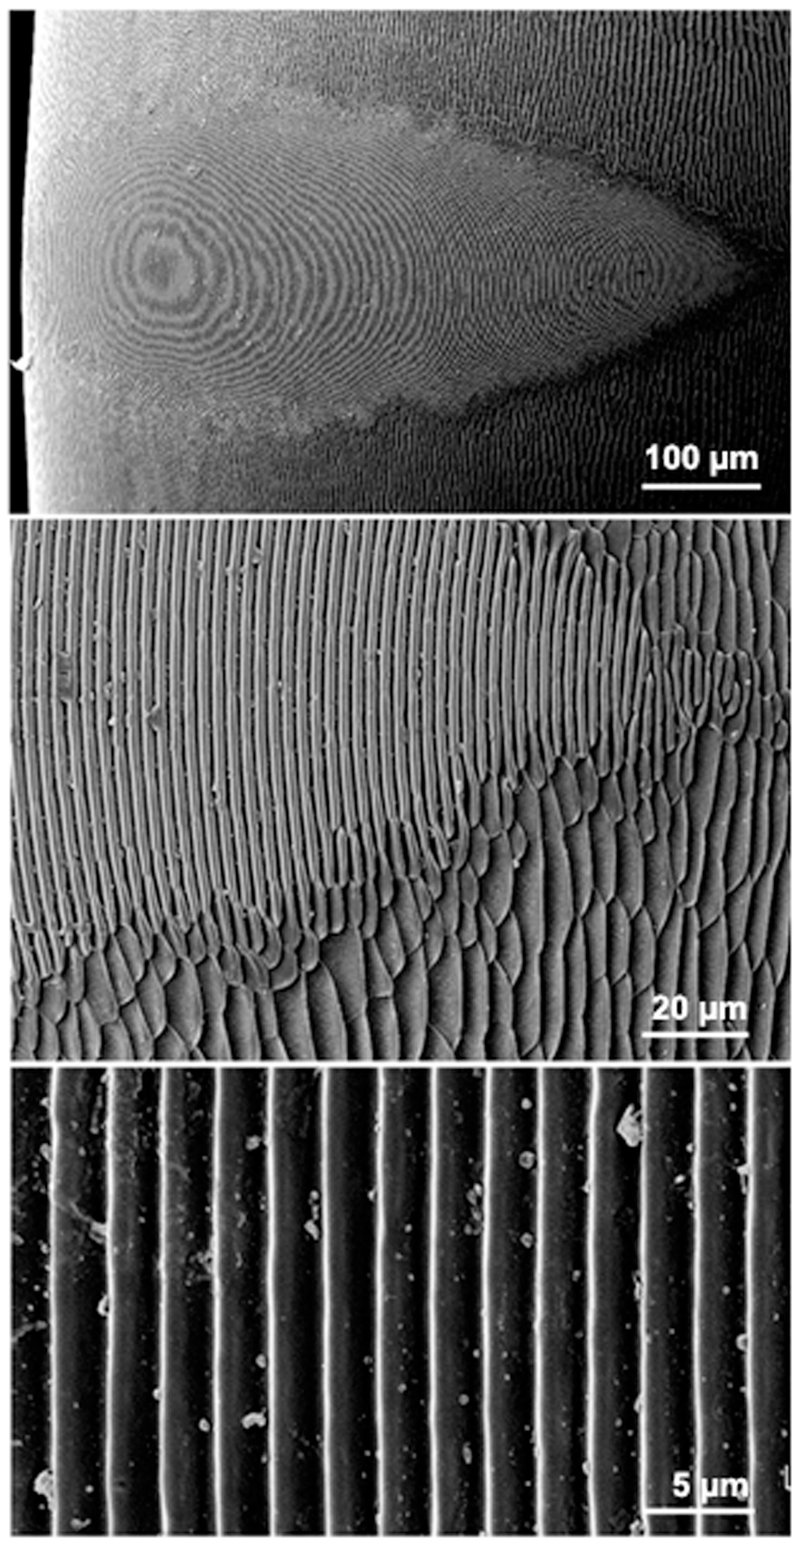 Figure 1 - Scanning electron micrographs of the stridulatory file of a Pachycondyla apicalis species complex worker. (A) General view of the stridulatory file, (B) detail of the ridges showing the interface between the fine structure of the file and the surrounding cuticle, and (C) detail in the medial portion of the stridulatory file, showing the inter-ridge distances. © Ferreira et al., 2010. The image is part of Kuai Shen's open-access article distributed under the terms of the Creative Commons Attribution License. Used with permission.